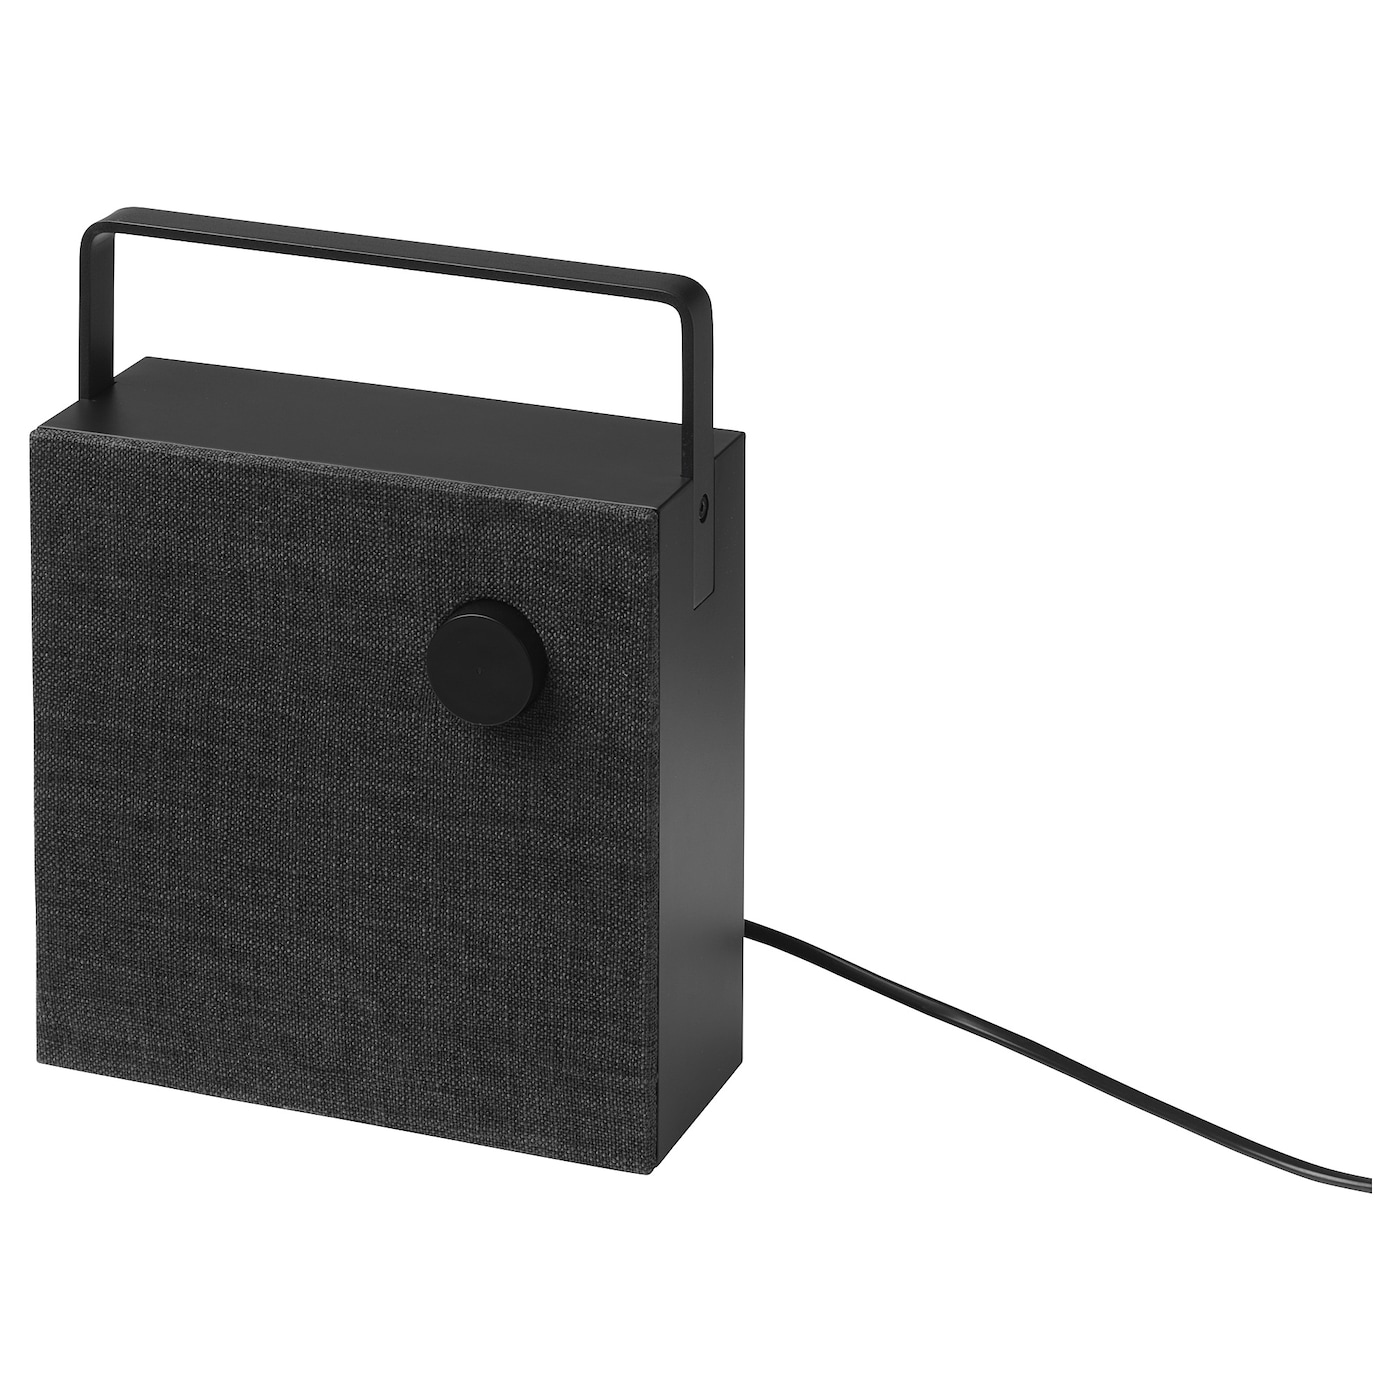 IKEA ENEBY bluetooth speaker A discrete and portable speaker with a clear, powerful sound.